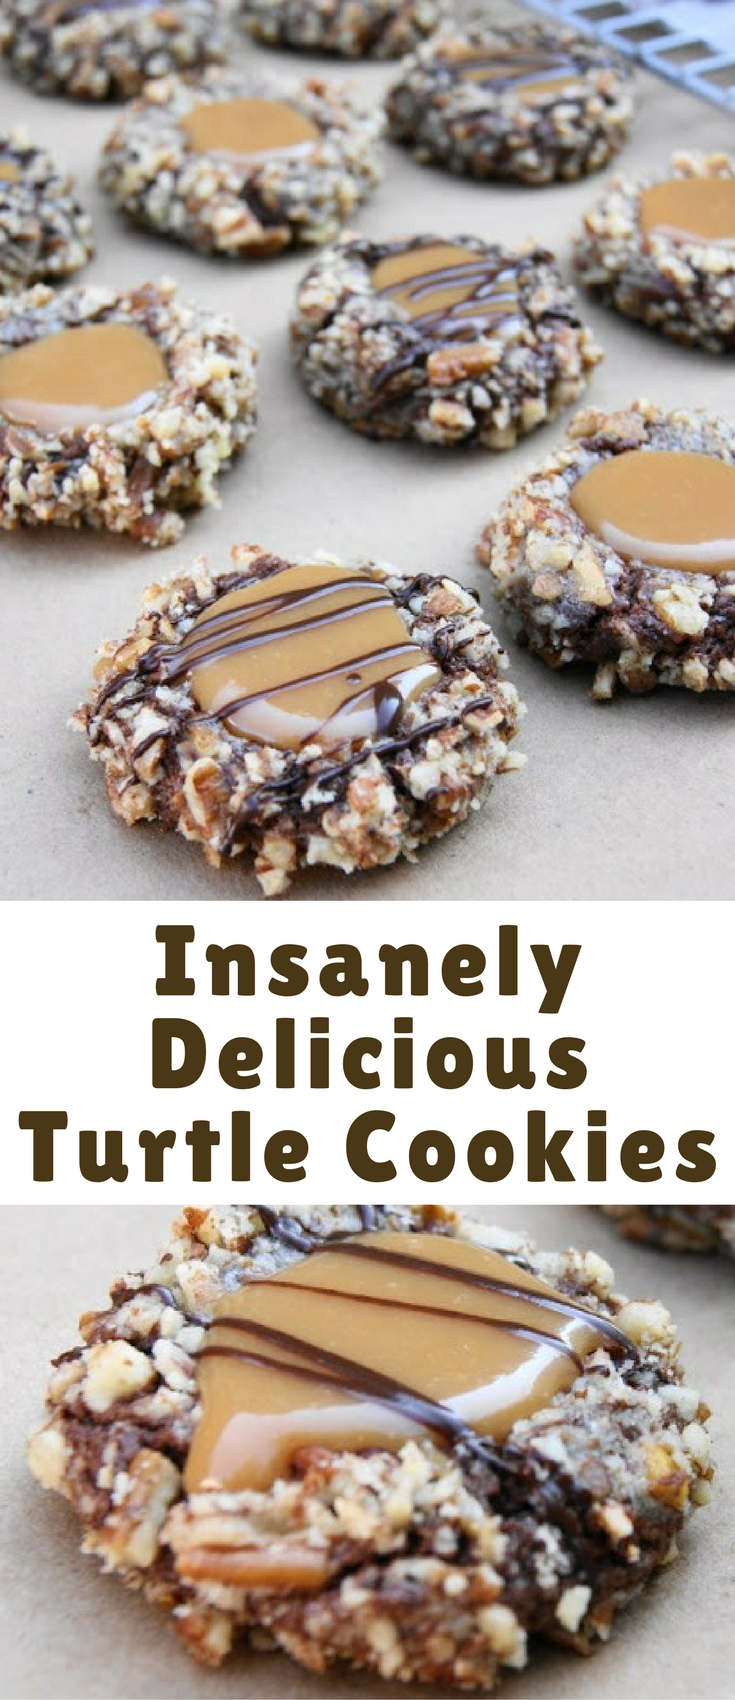 The classic flavors of turtle candy ... chocolate, pecans, and caramel ... in soft and insanely delicious Turtle Cookies.